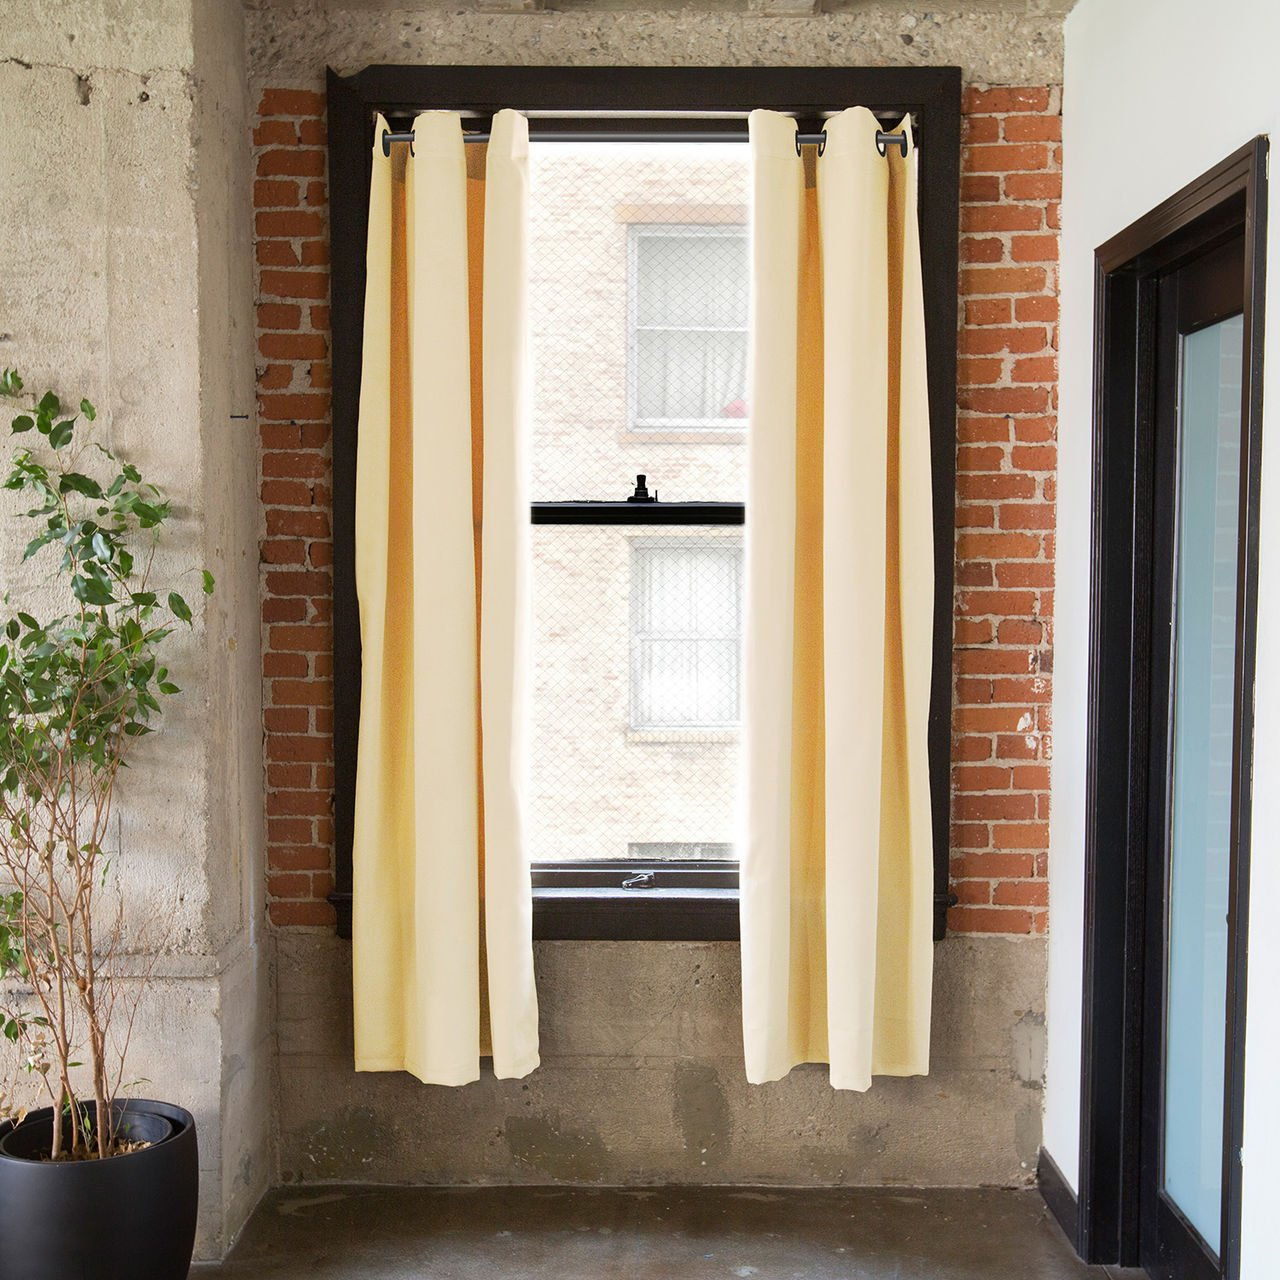 CurtainKitsNow Premium Heavyweight Tension Rod Curtain Kit - Large C, Includes Two Ivory 96'' x 50'' Wide Panels & One 80'' - 100'' Tension Rod) by CurtainKitsNow (Image #1)